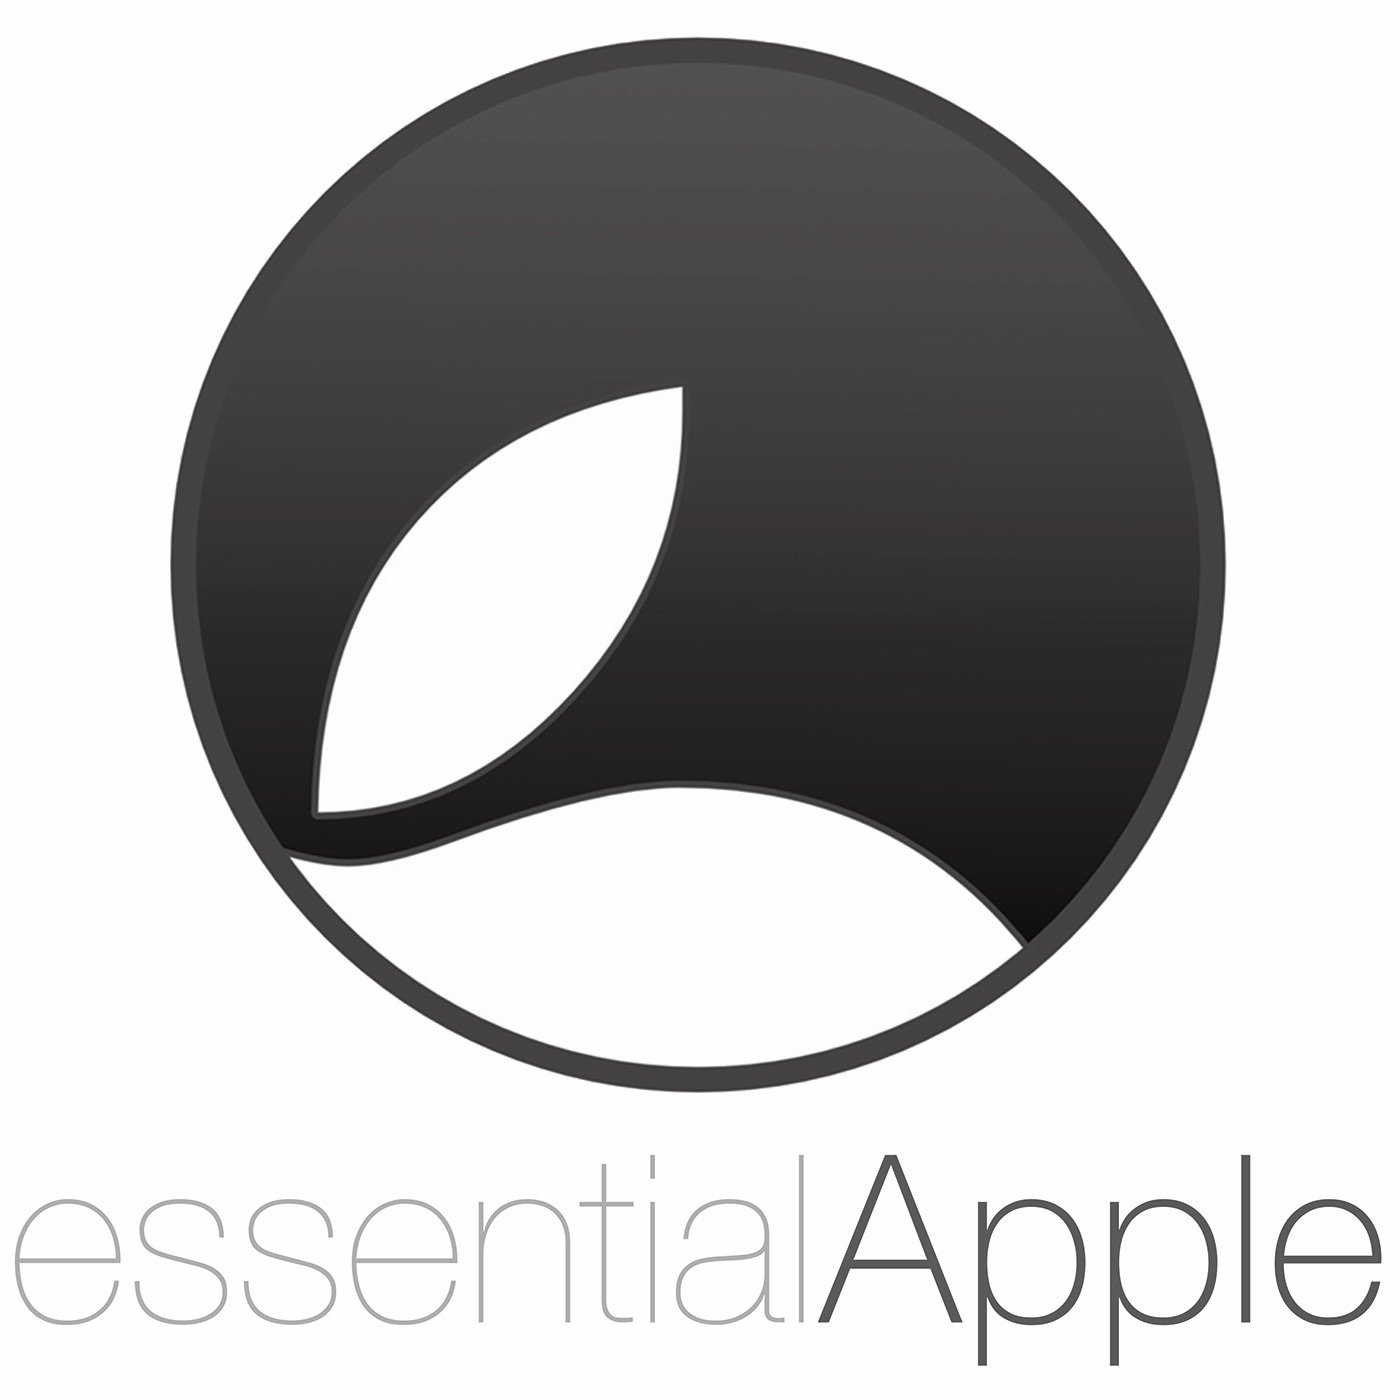 5b49f0db1504 The Essential Apple Show by Essential Apple on Apple Podcasts